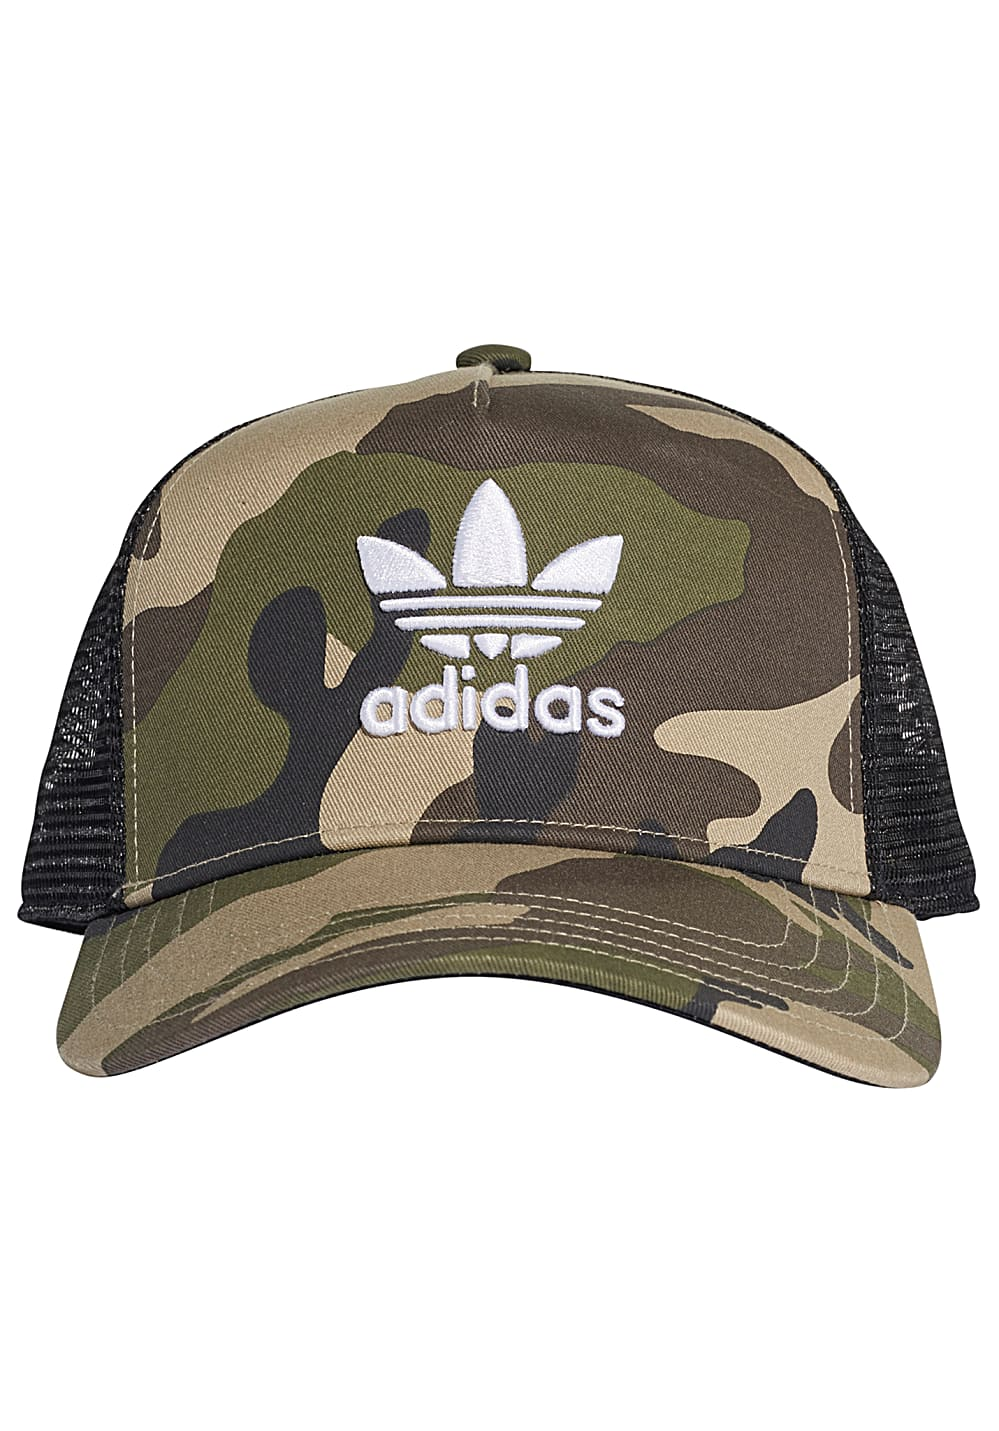 8c849a3a Adidas Camouflage Trucker Hat